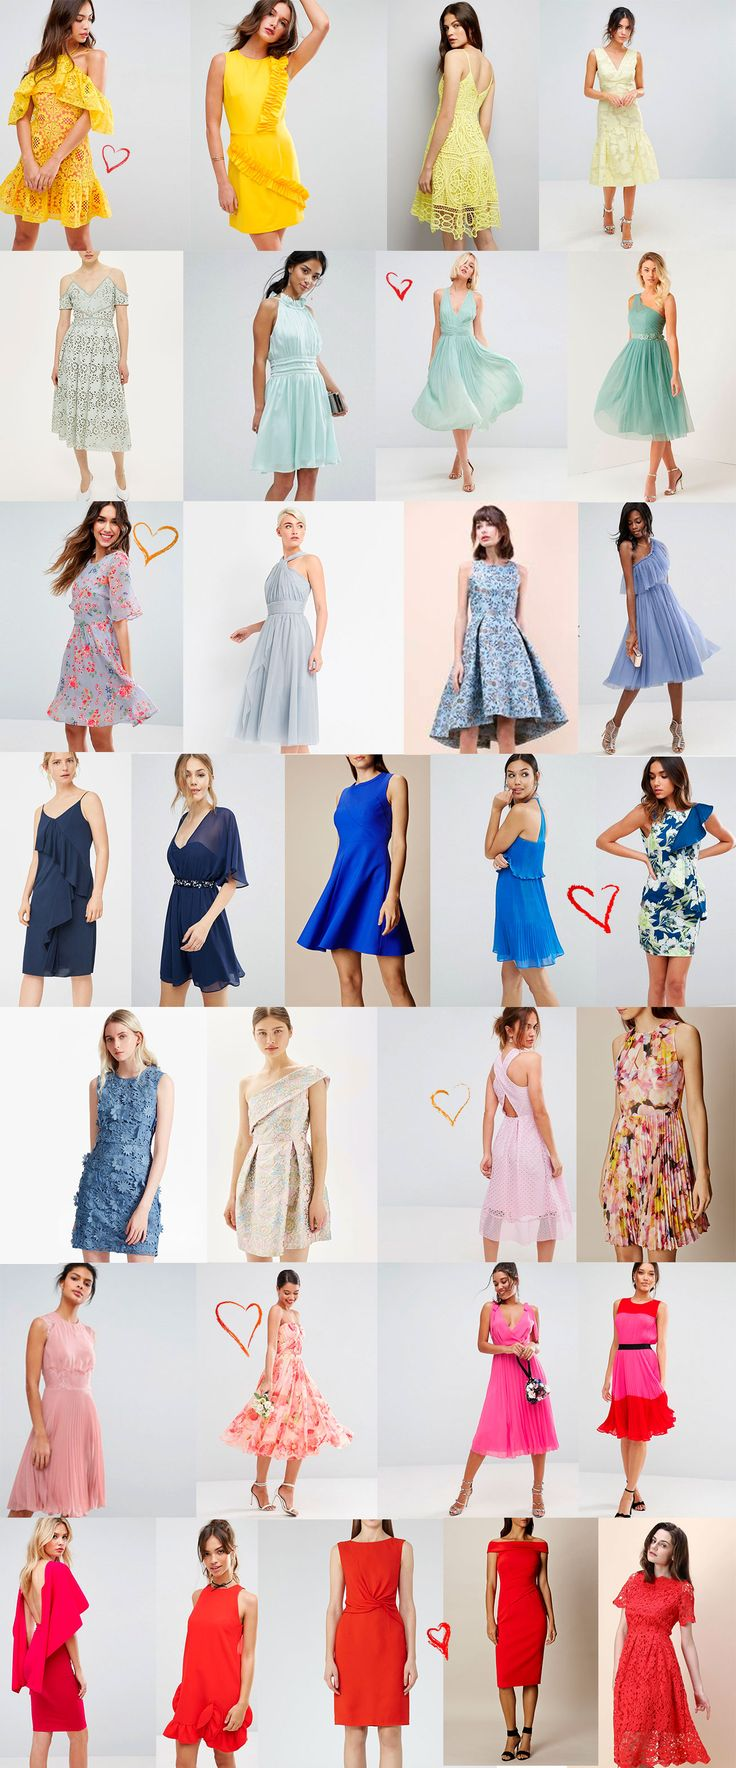 Weddings Dresses for Guests on Sales!